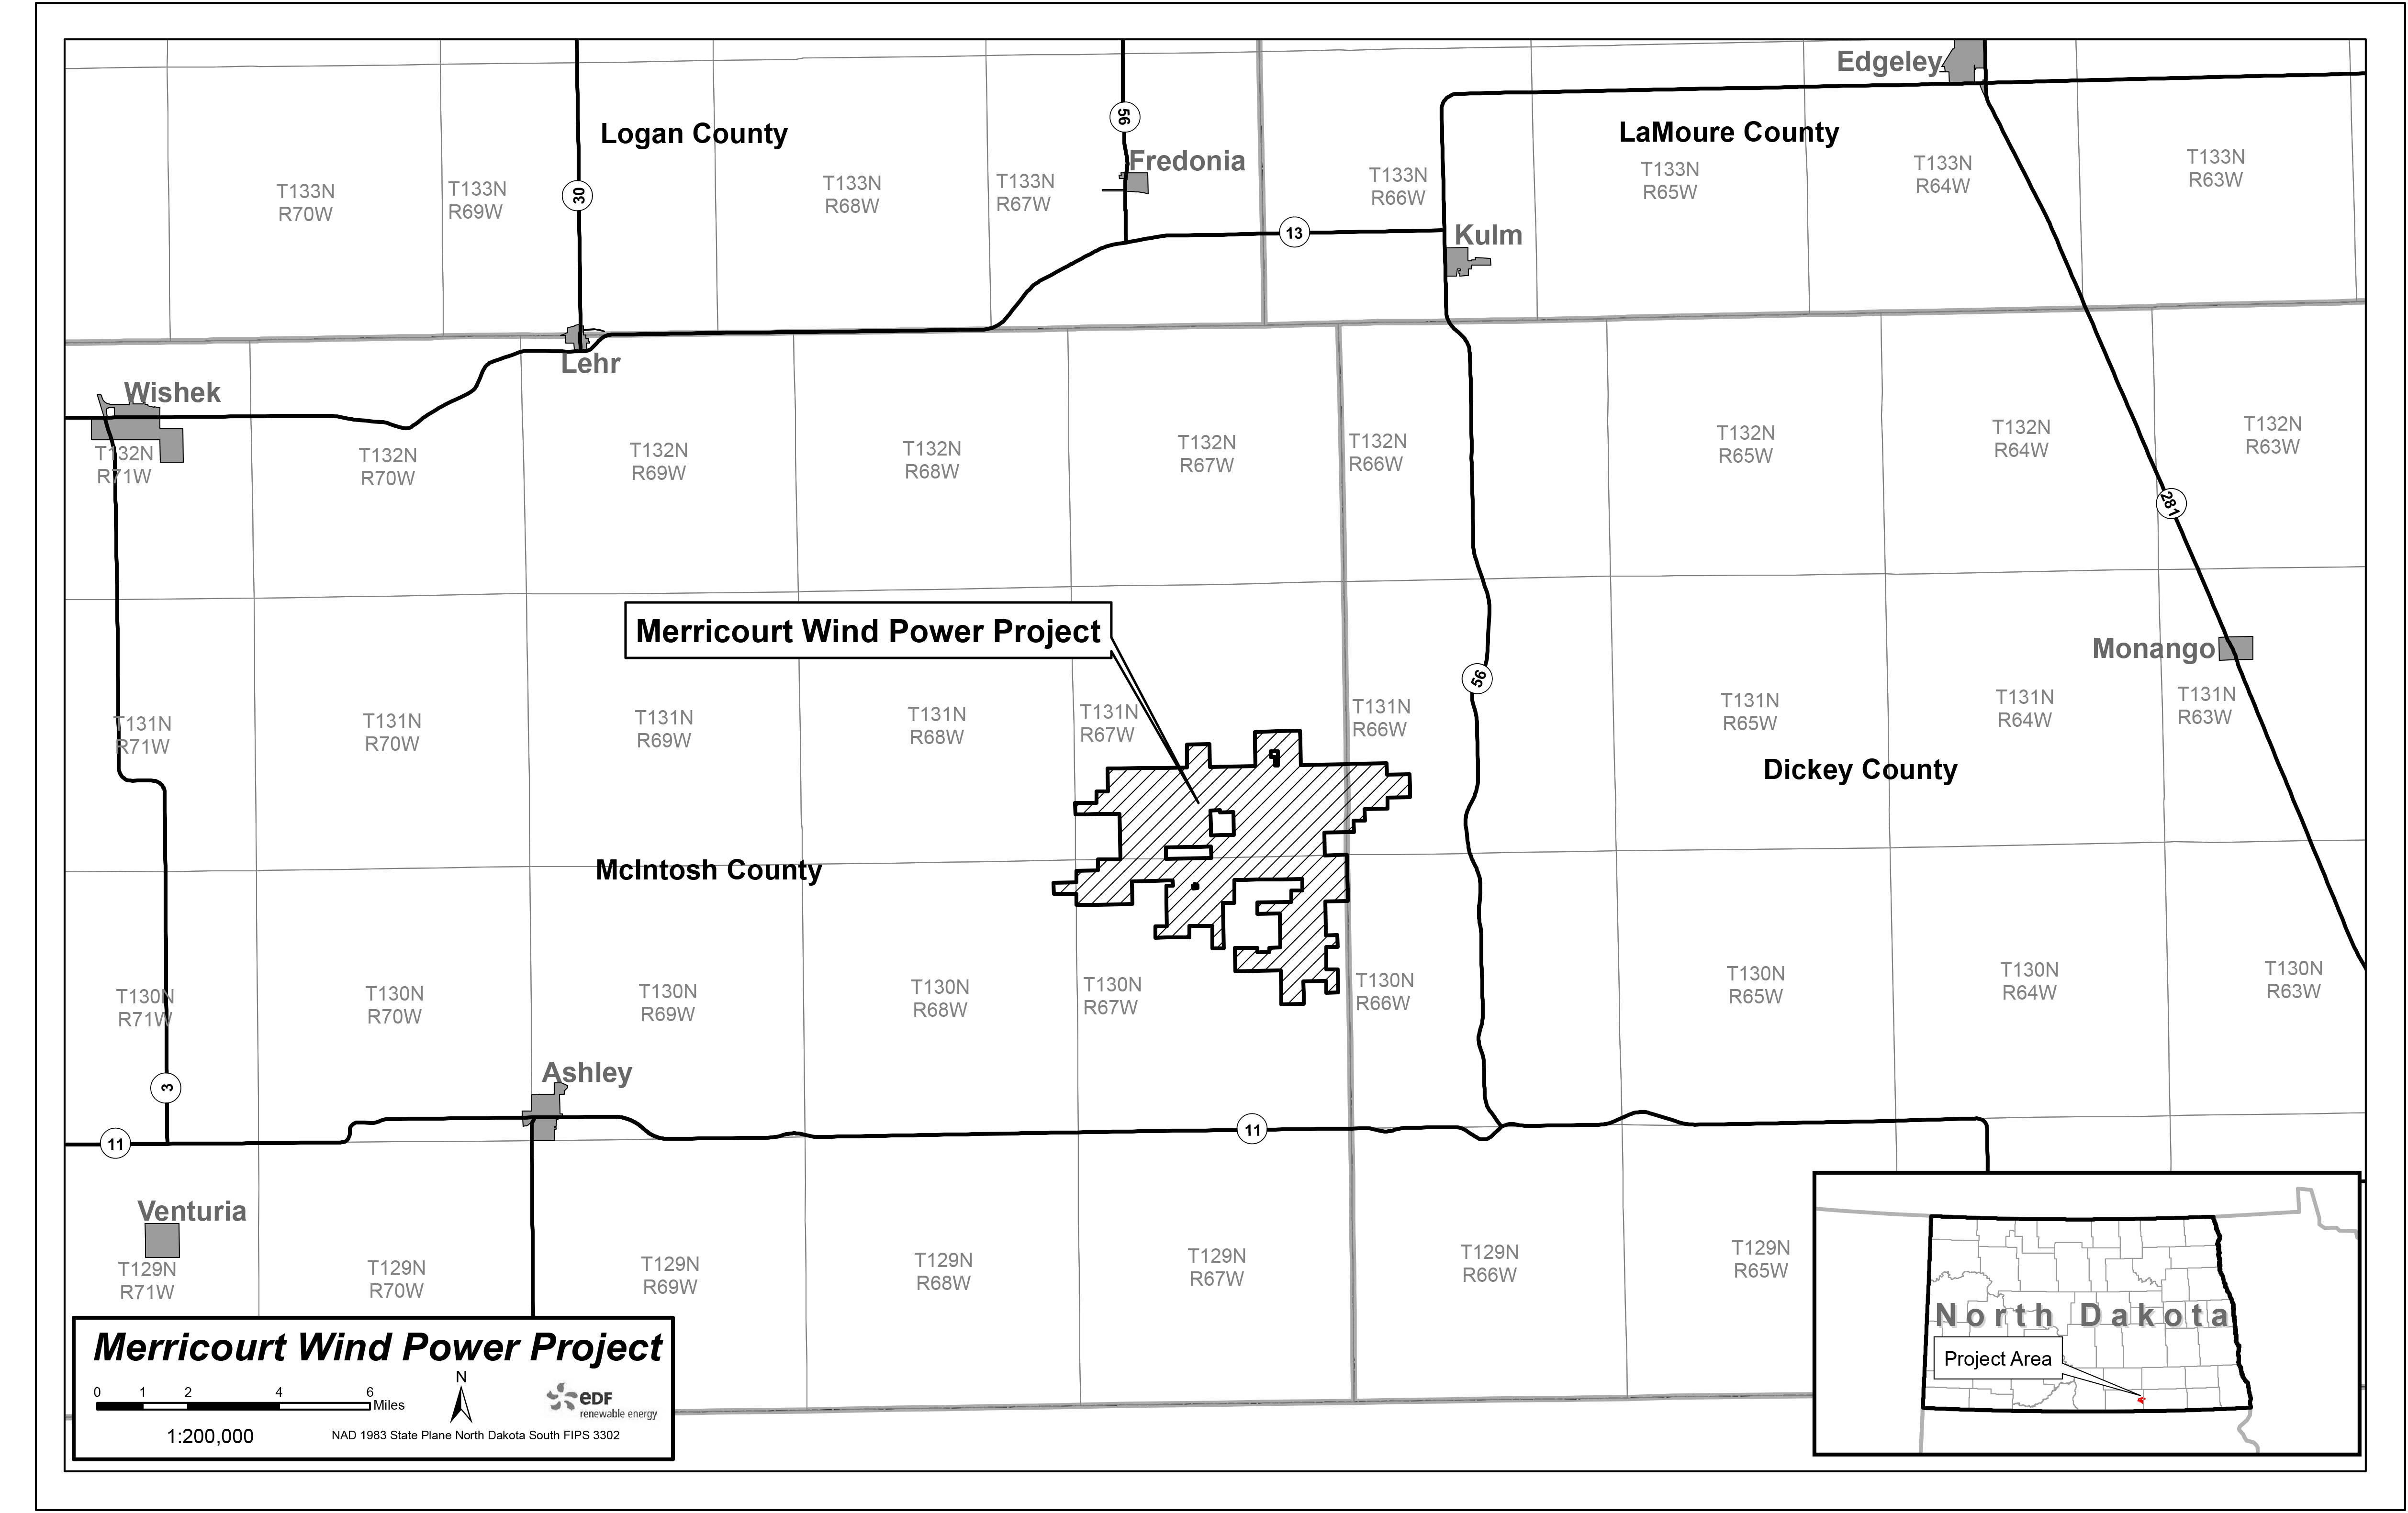 North dakota logan county fredonia - The North Dakota Public Service Commission Will Hold A Public Hearing Next Week In Ashley Regarding A Proposal To Amend The Permit For The Merricourt Wind